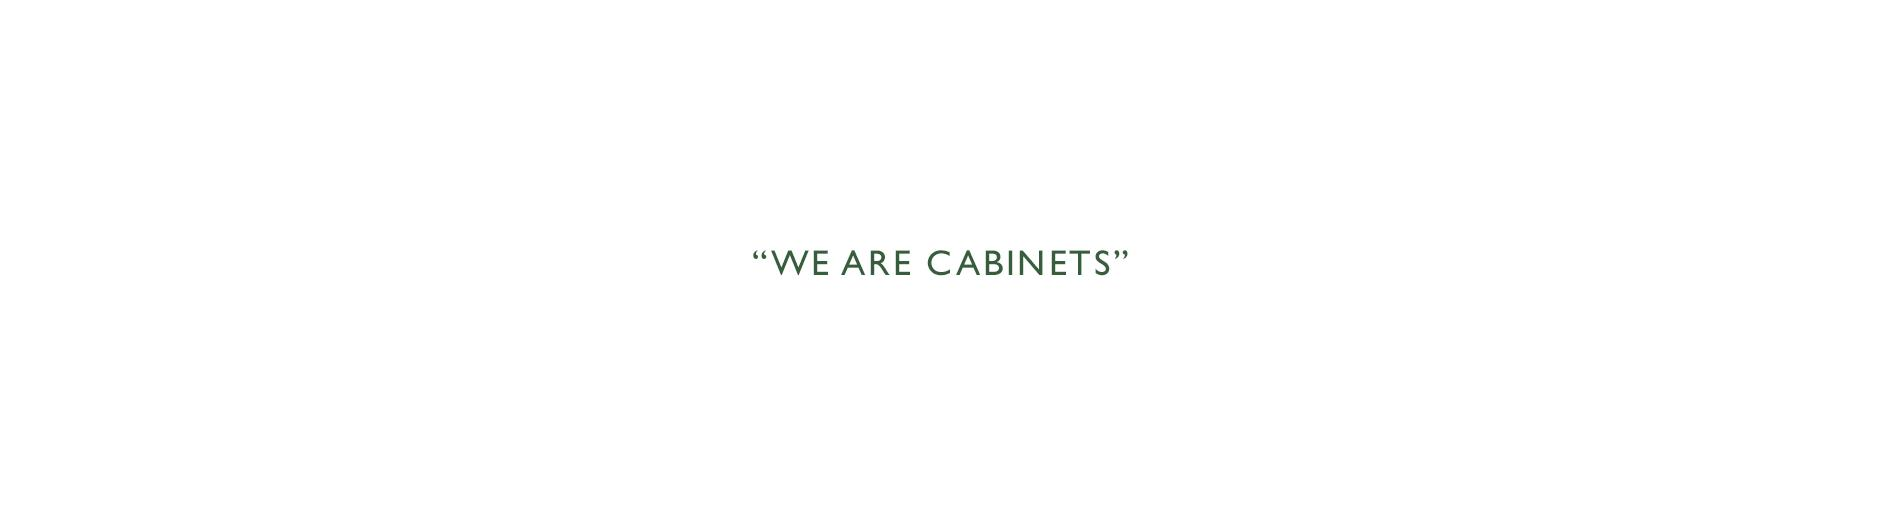 we-are-cabinets